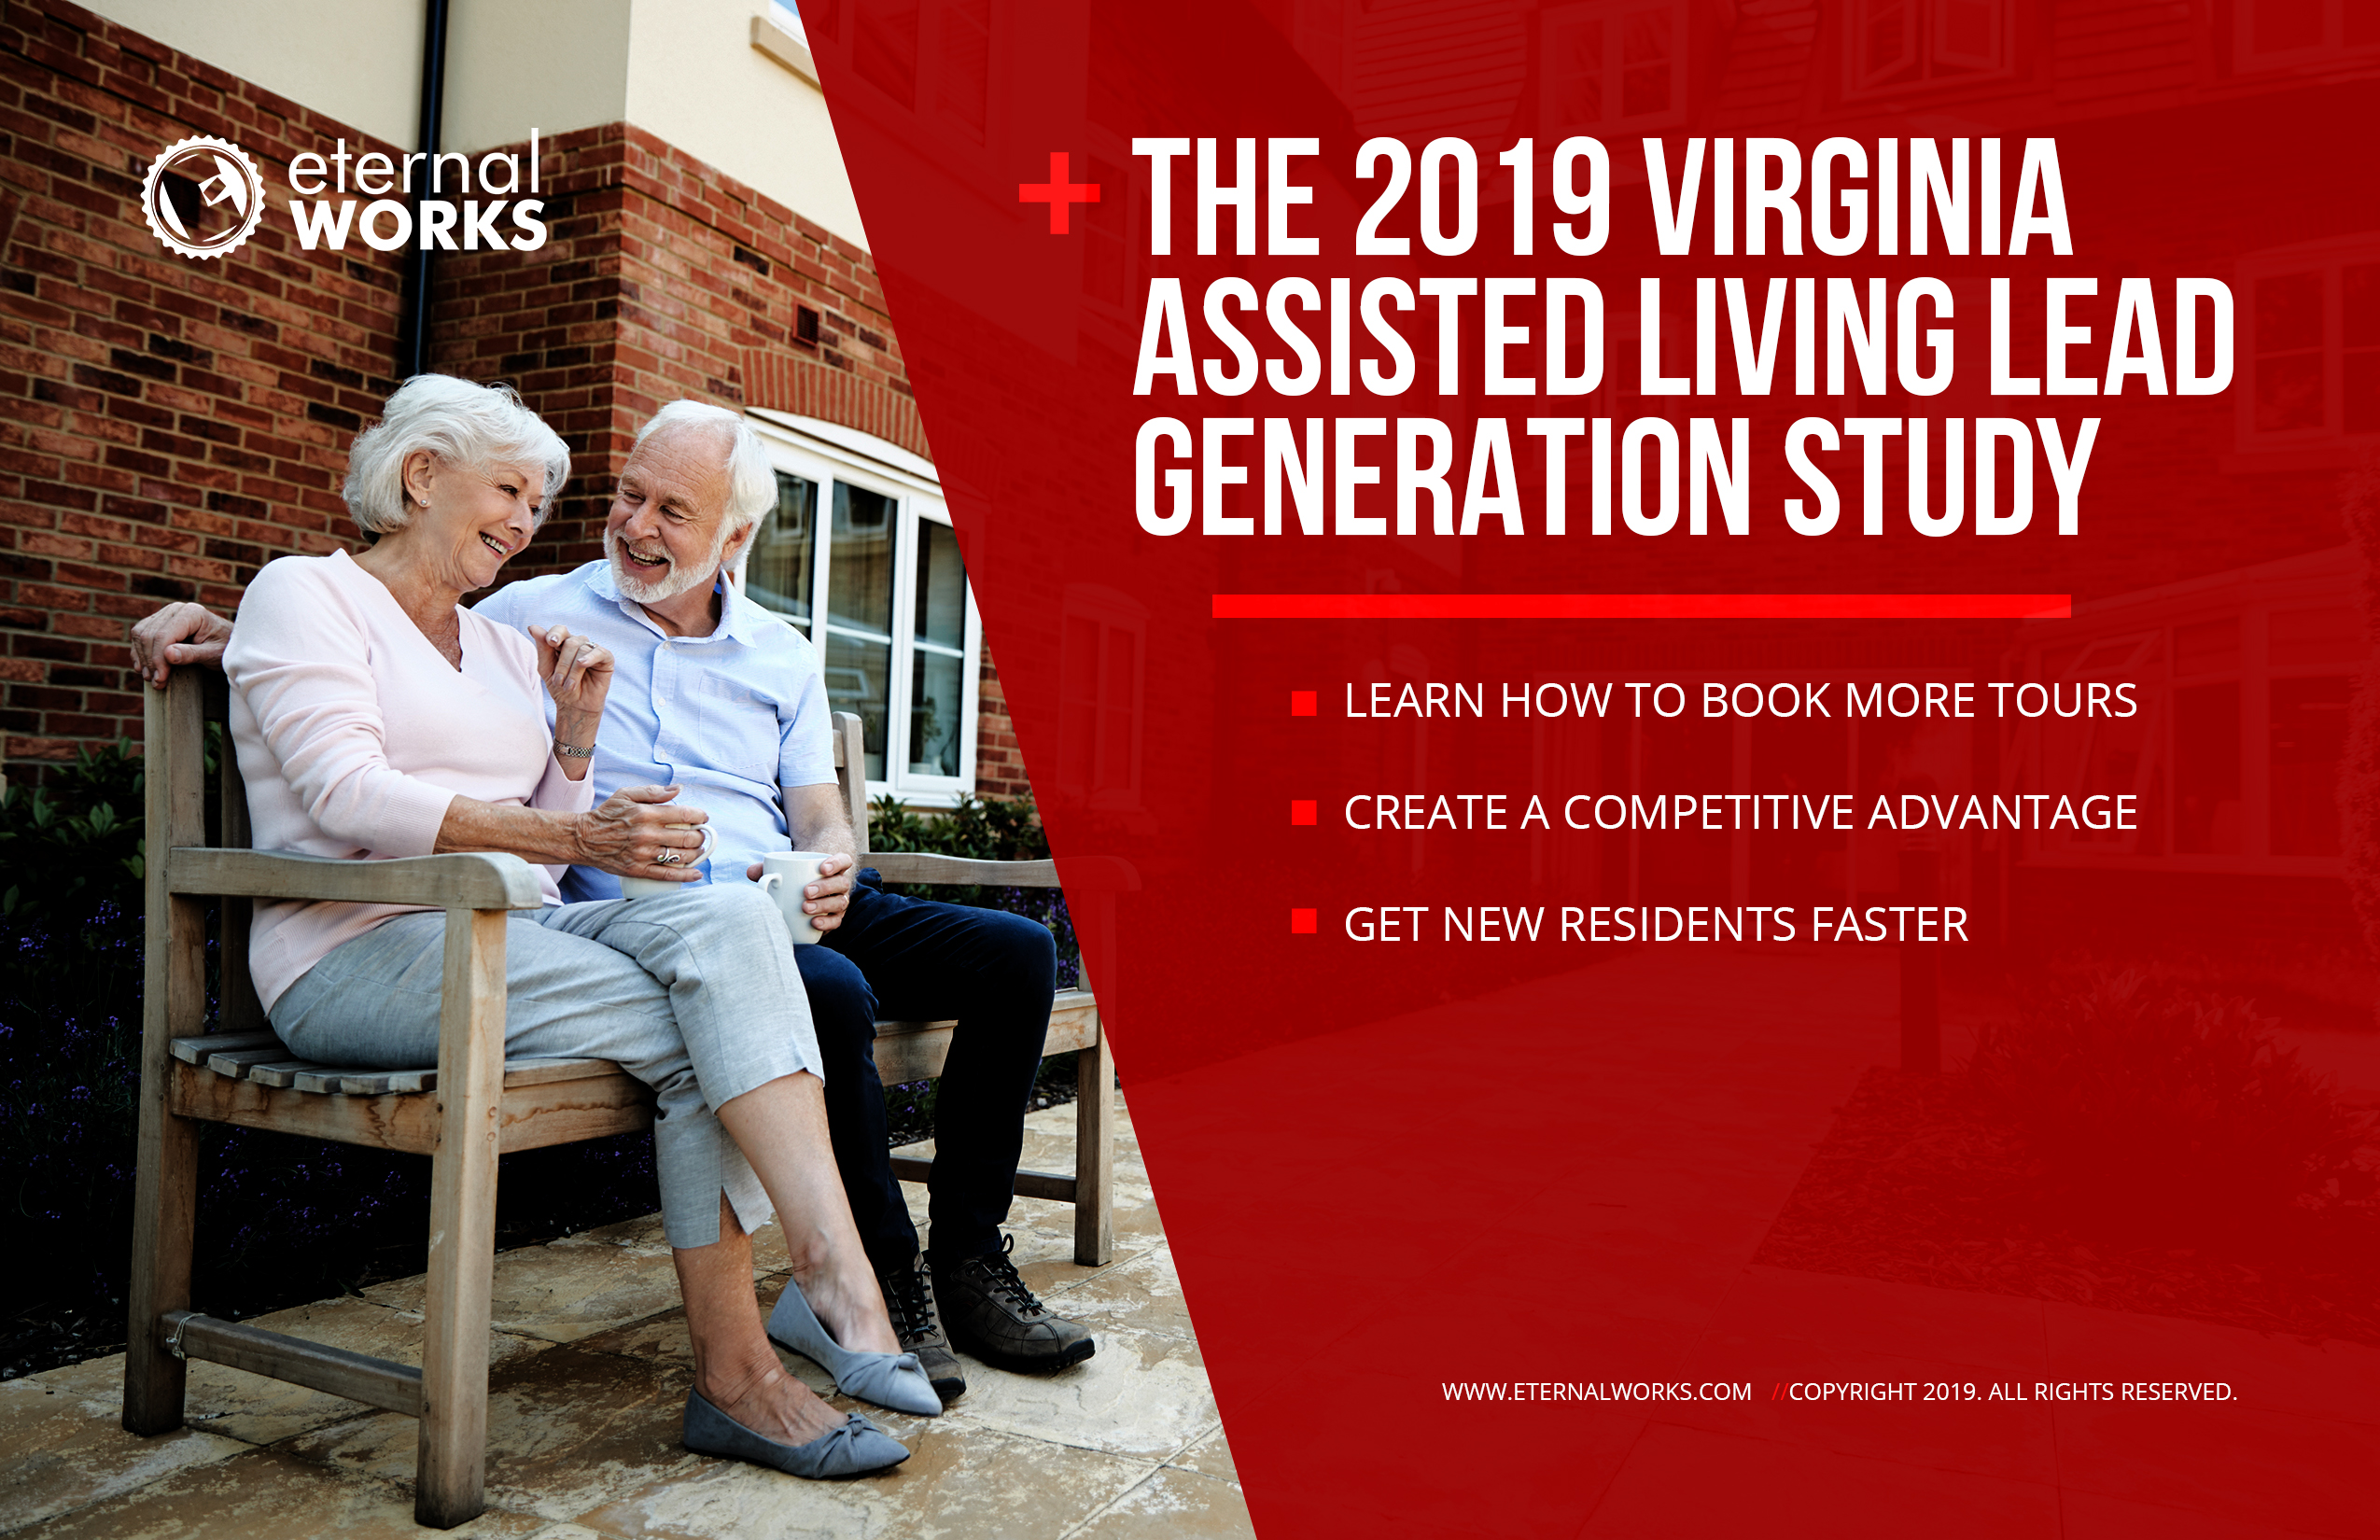 The 2019 Virginia Assisted Living Lead generation Study